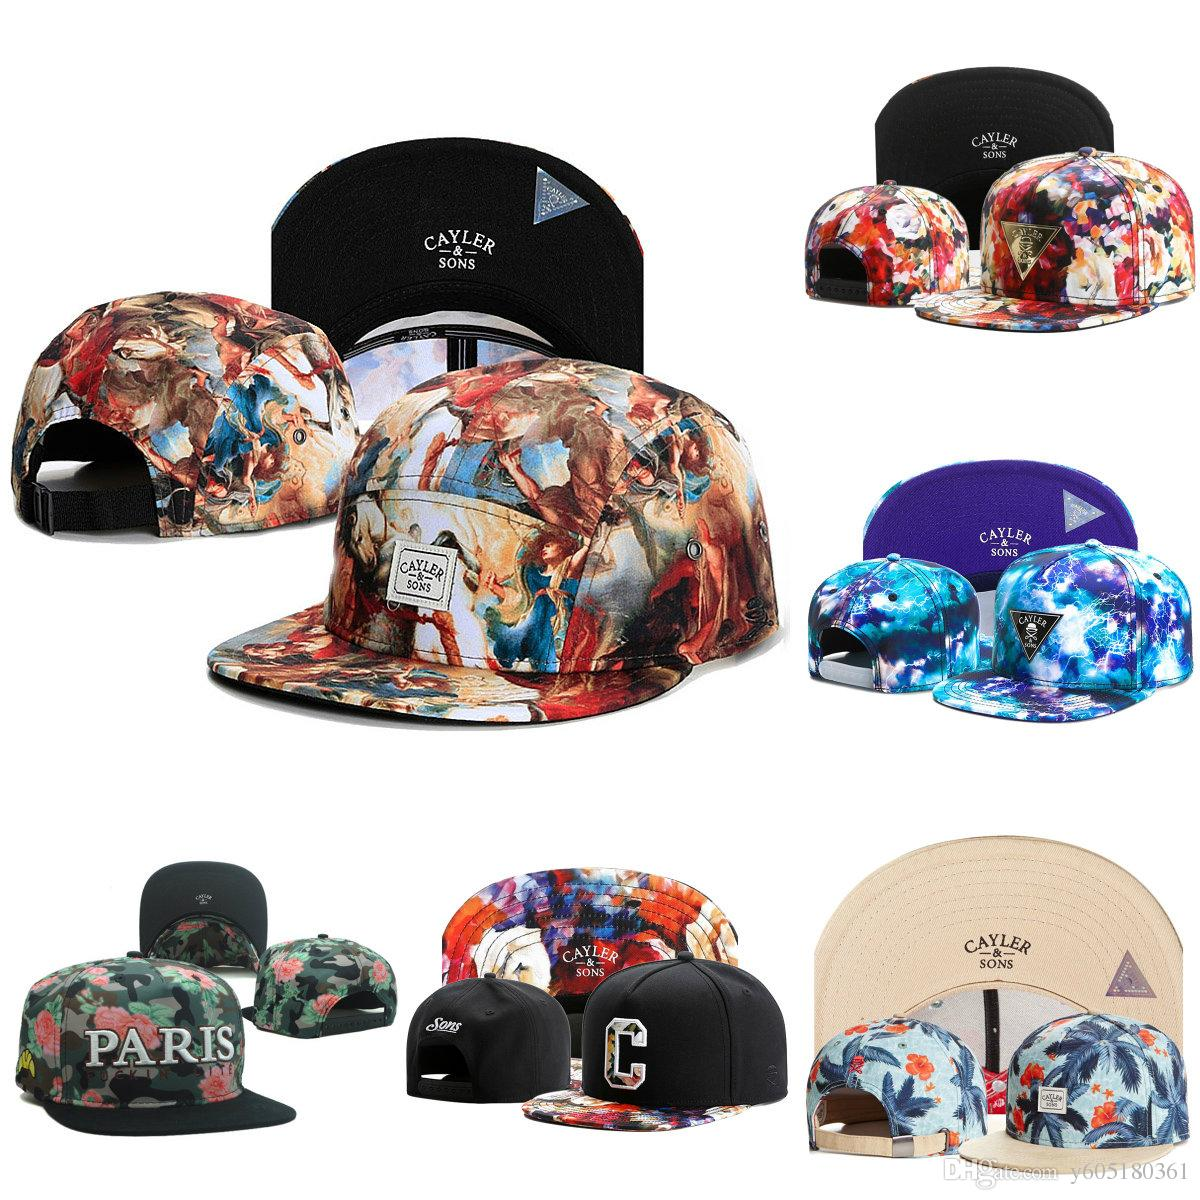 2018 New Hip Hop Snapback Cap Mens Basketball Hat Baseball Caps Hats Firred  Brad Men Women Brand Luxury Hat Flowers Style Golf Casquettl Neweracap Cap  Hat ... 1033da74bc4